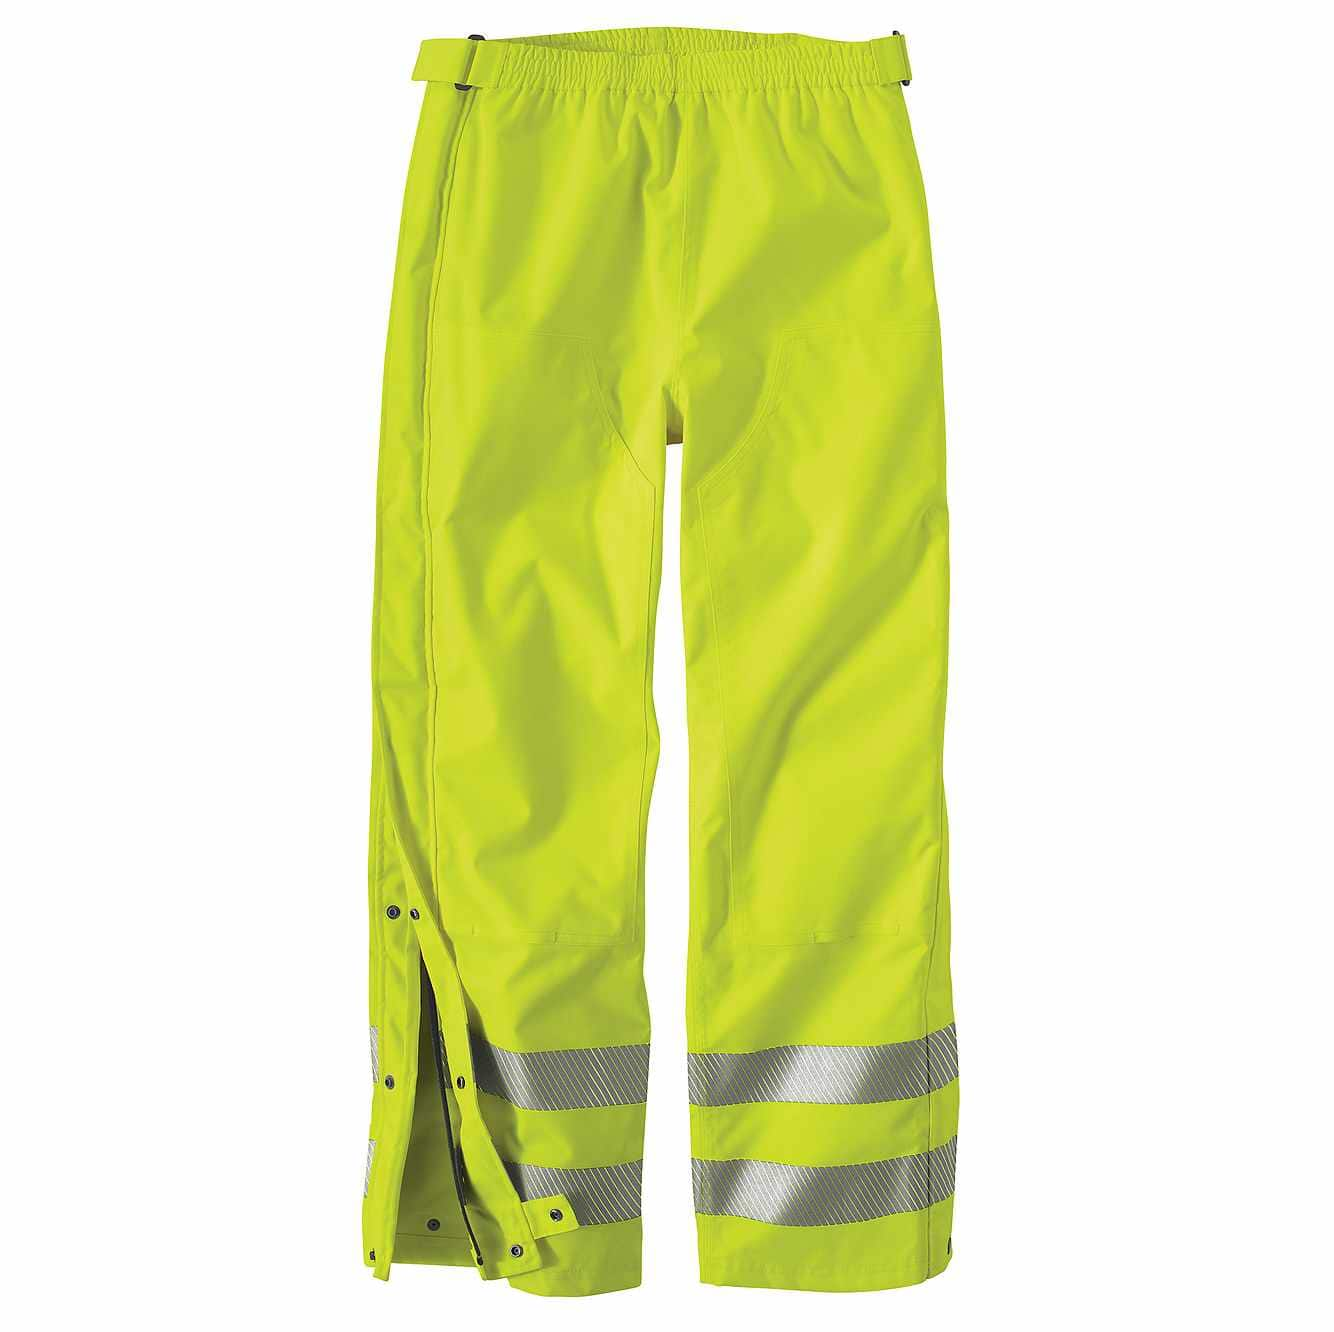 Picture of High-Visibility Class 3 Waterproof Pant in Brite Lime